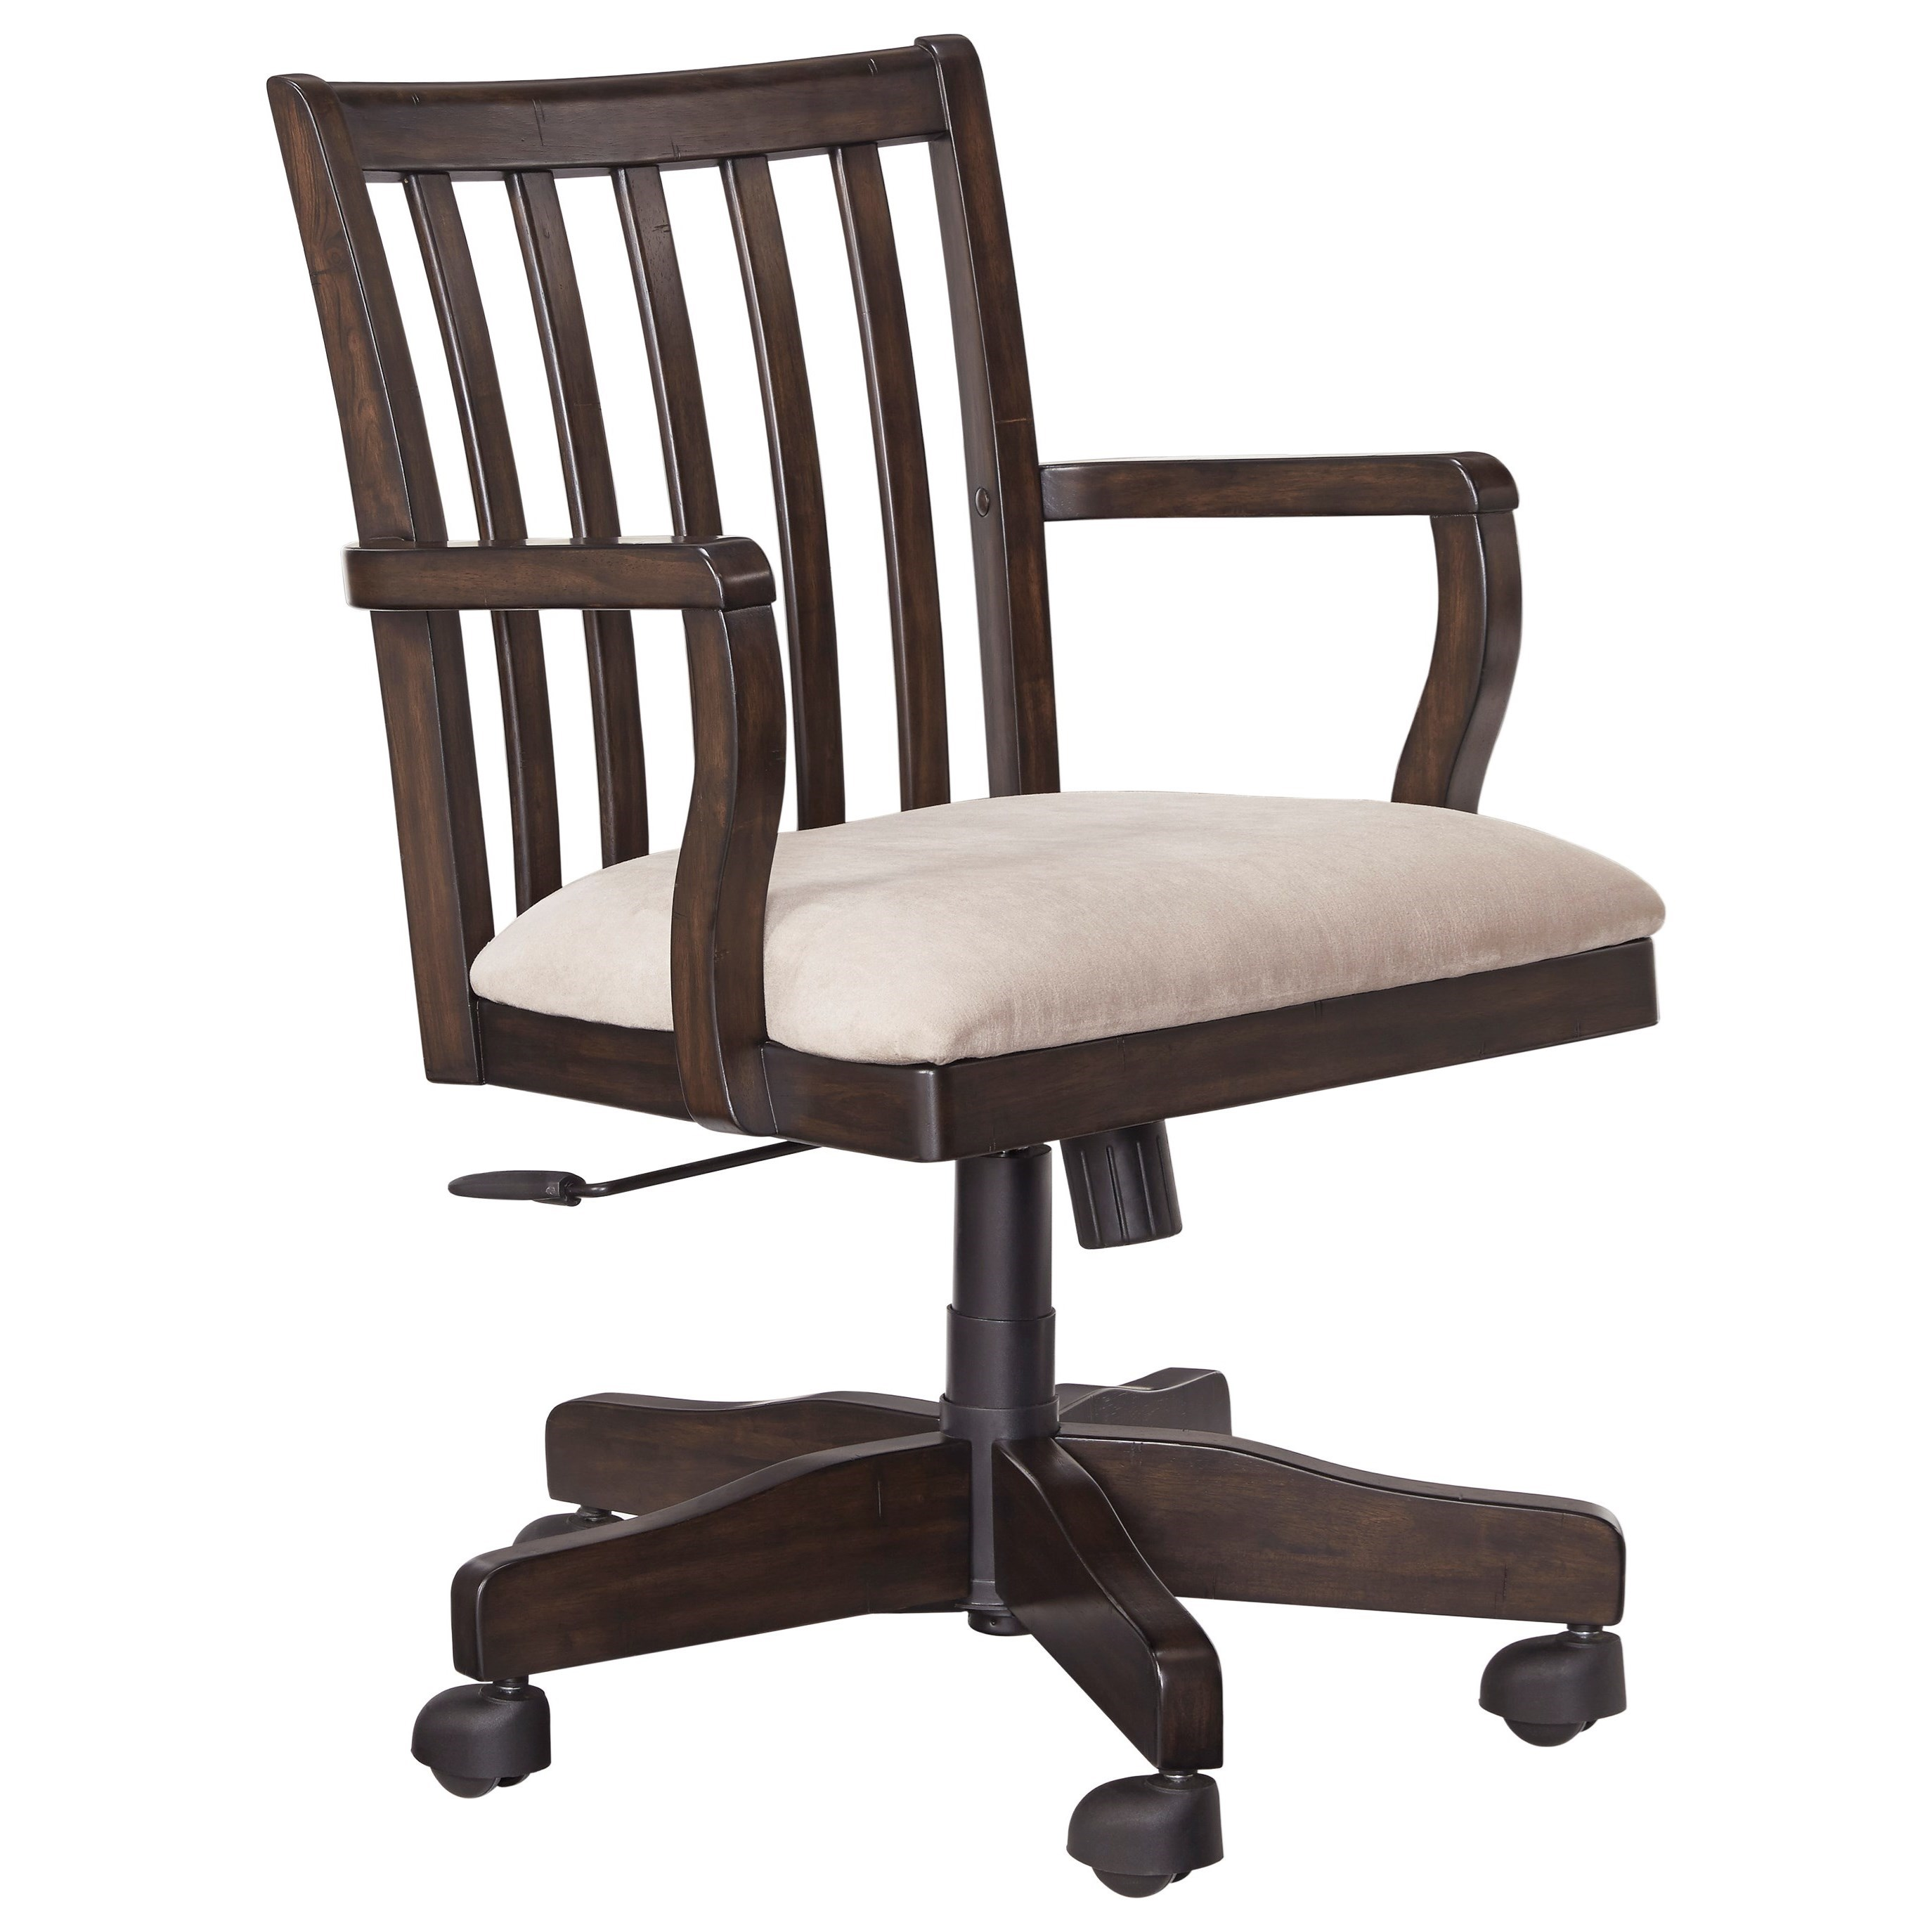 Townser Home Office Swivel Desk Chair by Signature Design by Ashley at Lapeer Furniture & Mattress Center